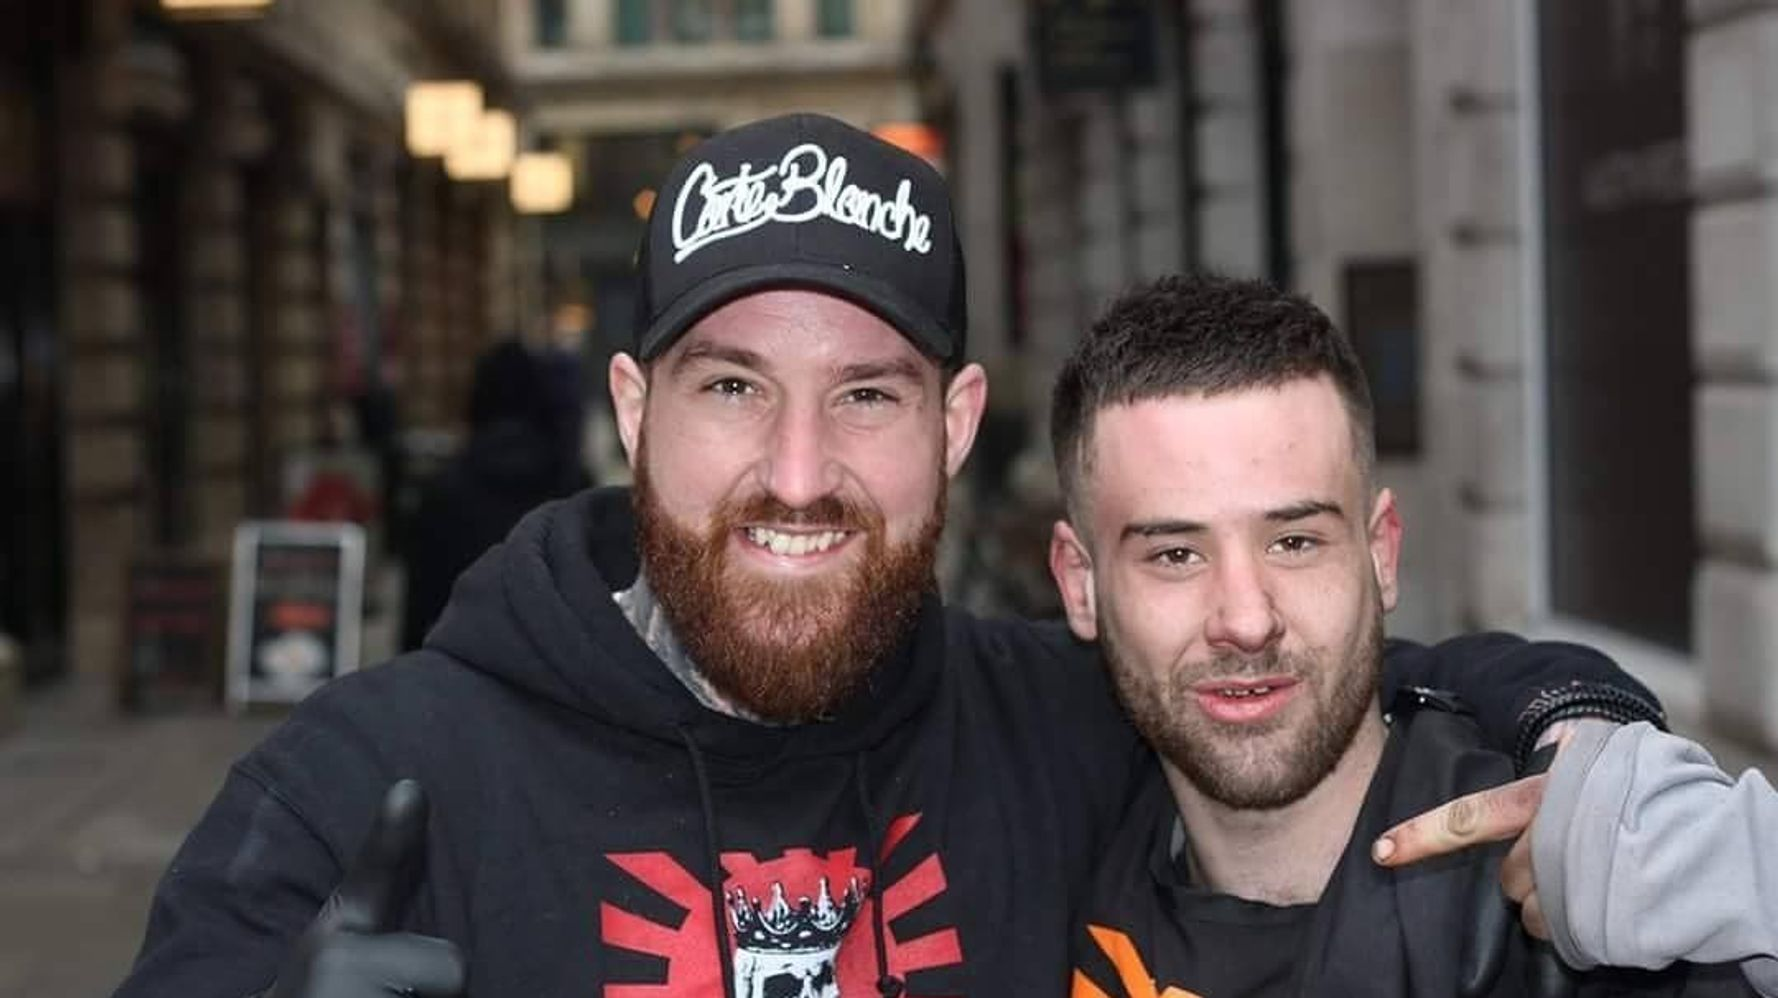 11,11 Haircuts Later, Barber Who Gives Free Trims To Homeless Is